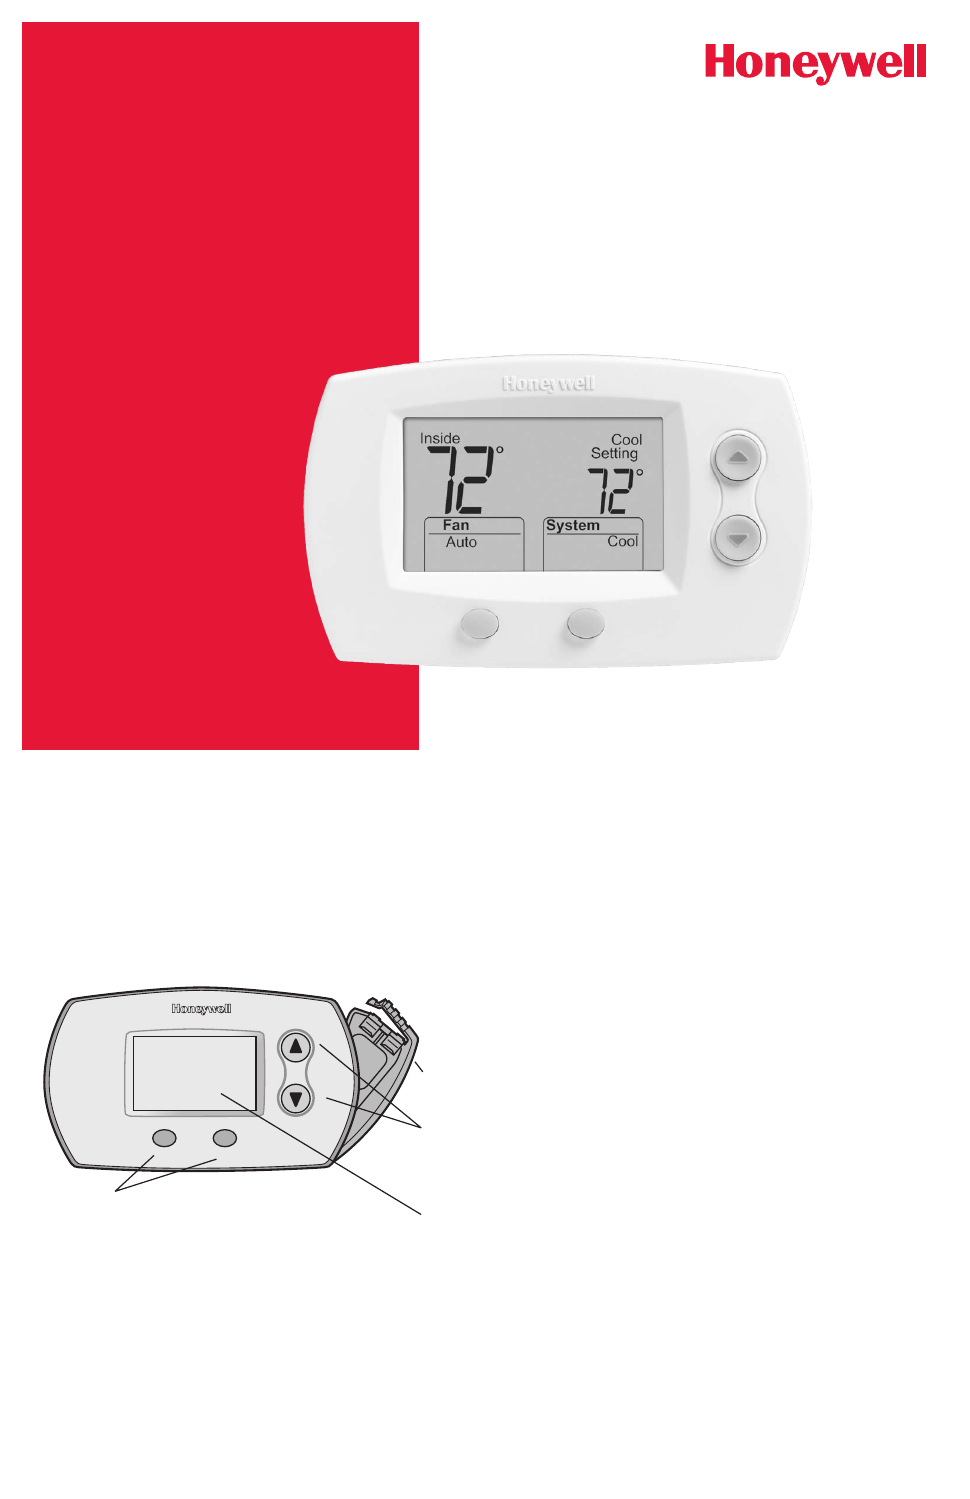 ... Diagram honeywell thermostat th5220d1003 installation guide. Image not  ...